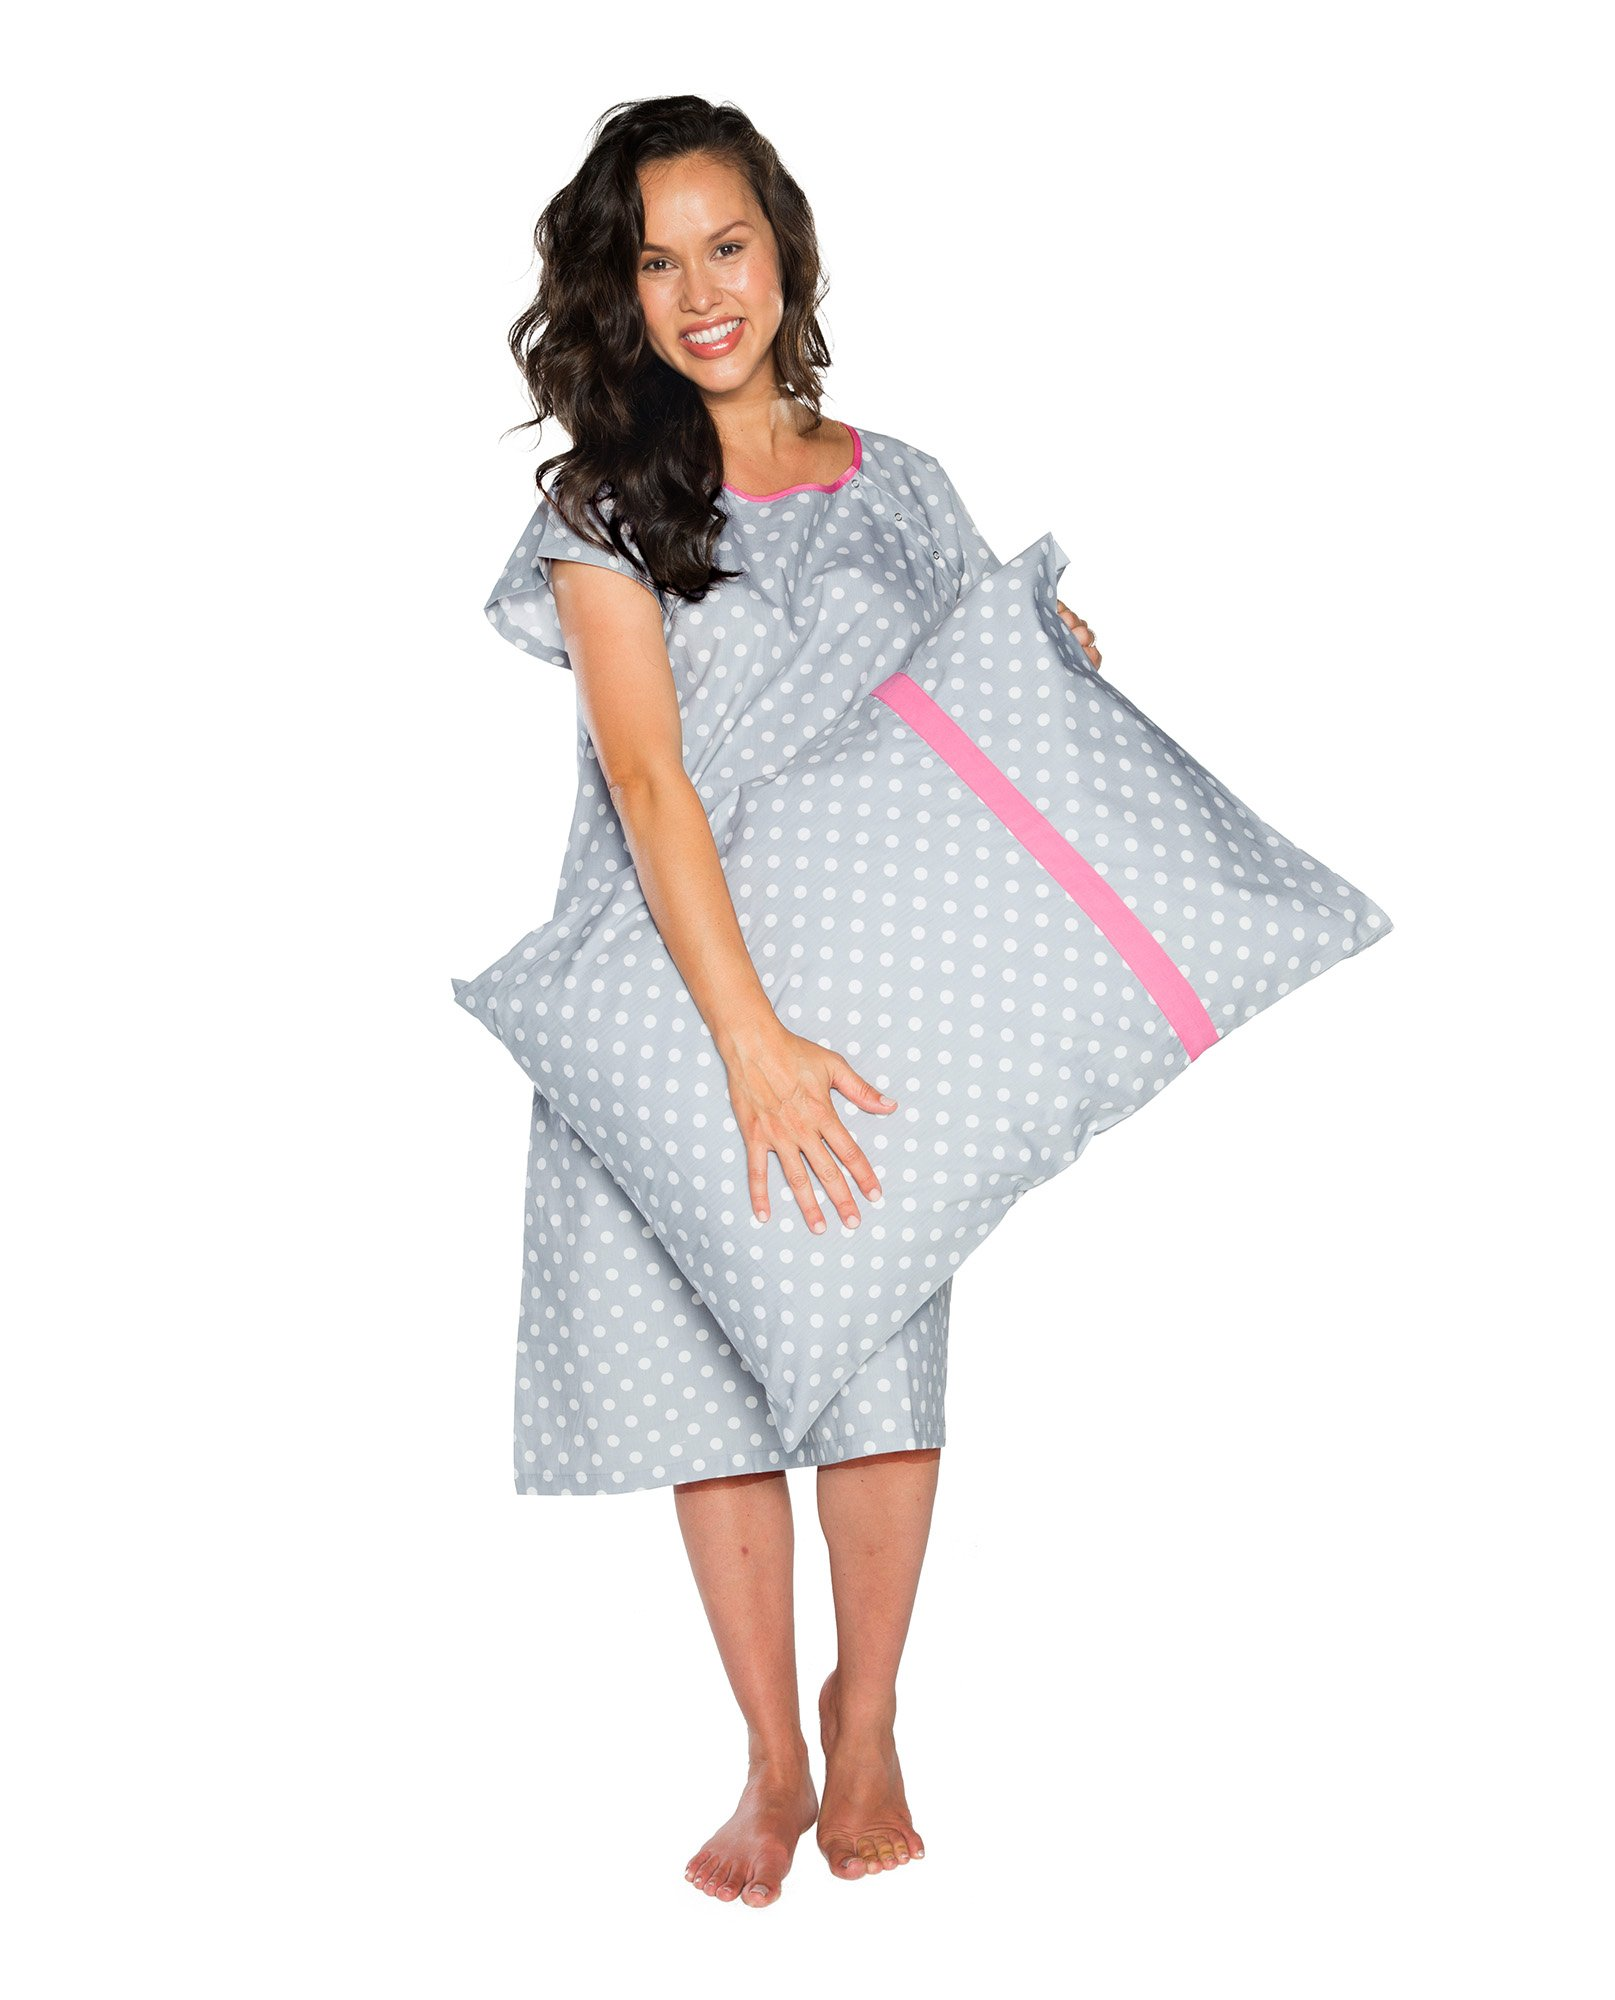 Gownies - Delivery Maternity Hospital Gown Set Labor Kit With P ...